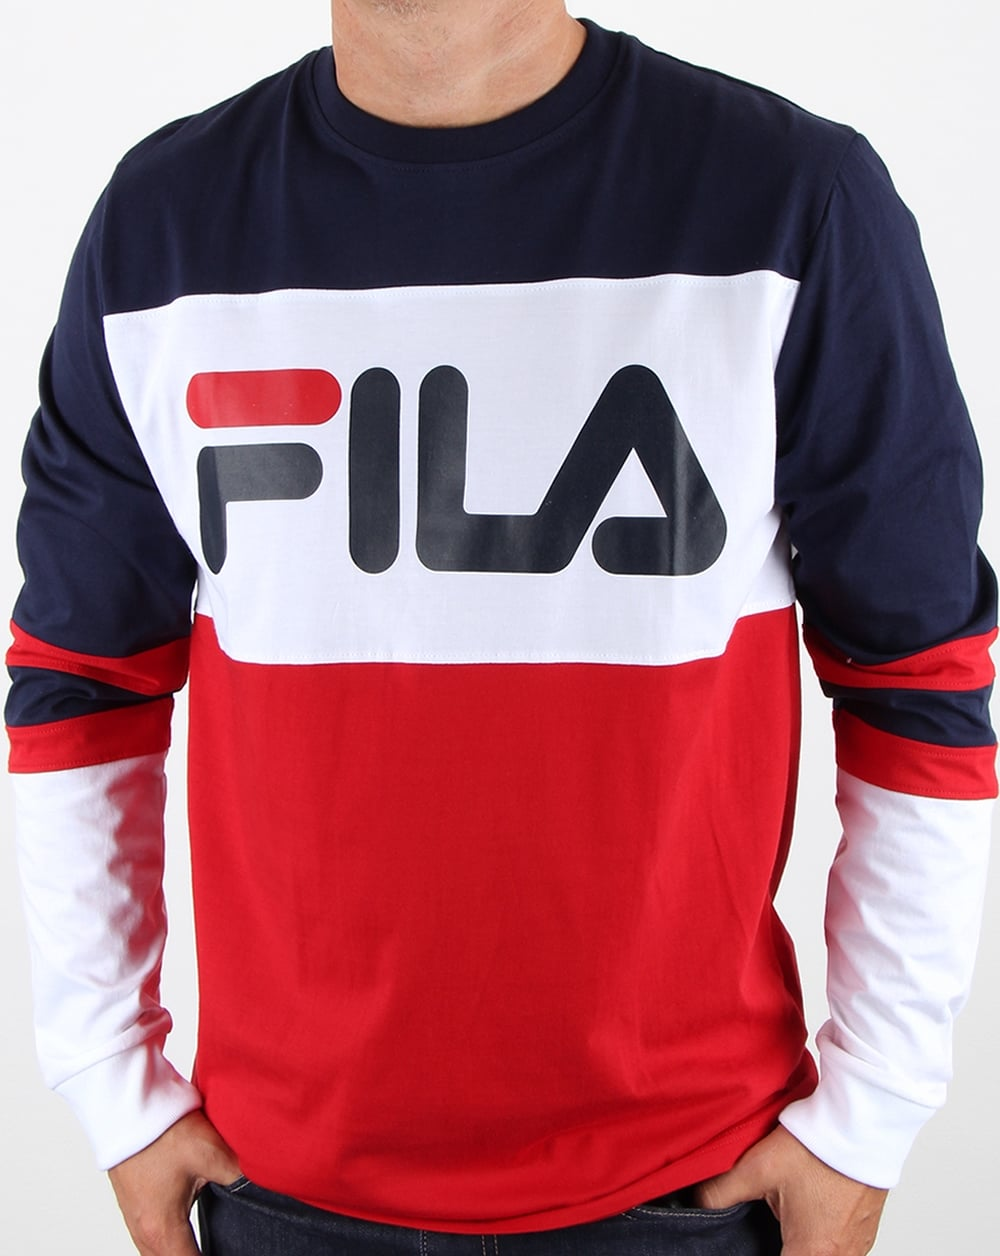 a888a0be2a2 Fila Vintage Dylan Long Sleeve T Shirt Navy,retro,90s,cotton,tee,mens